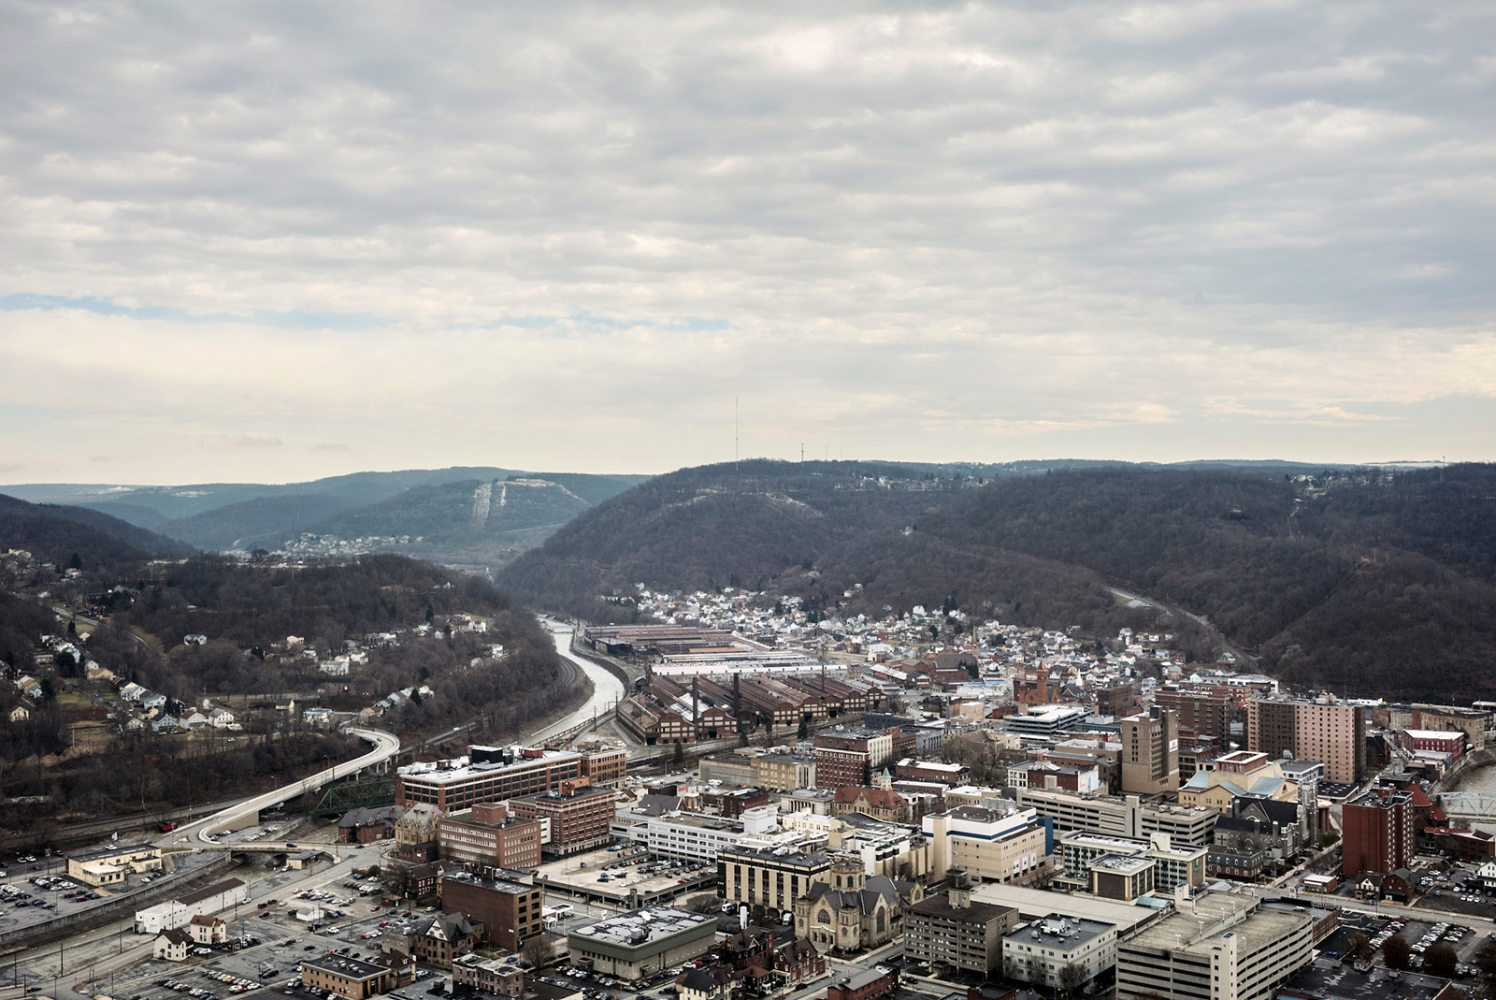 Johnstown, Cambria County, Pennsylvania. In Johnstown poverty rate is 34 percent, more than double the national figure, and in the last years Johnstown suffering from a rapidly declining population. Cambria County, home to Johnstown, chose Barack Obama during the 2008 election, but went heavily for Donald Trump in 2016 and Mr. Trump won for over 60% of preference.